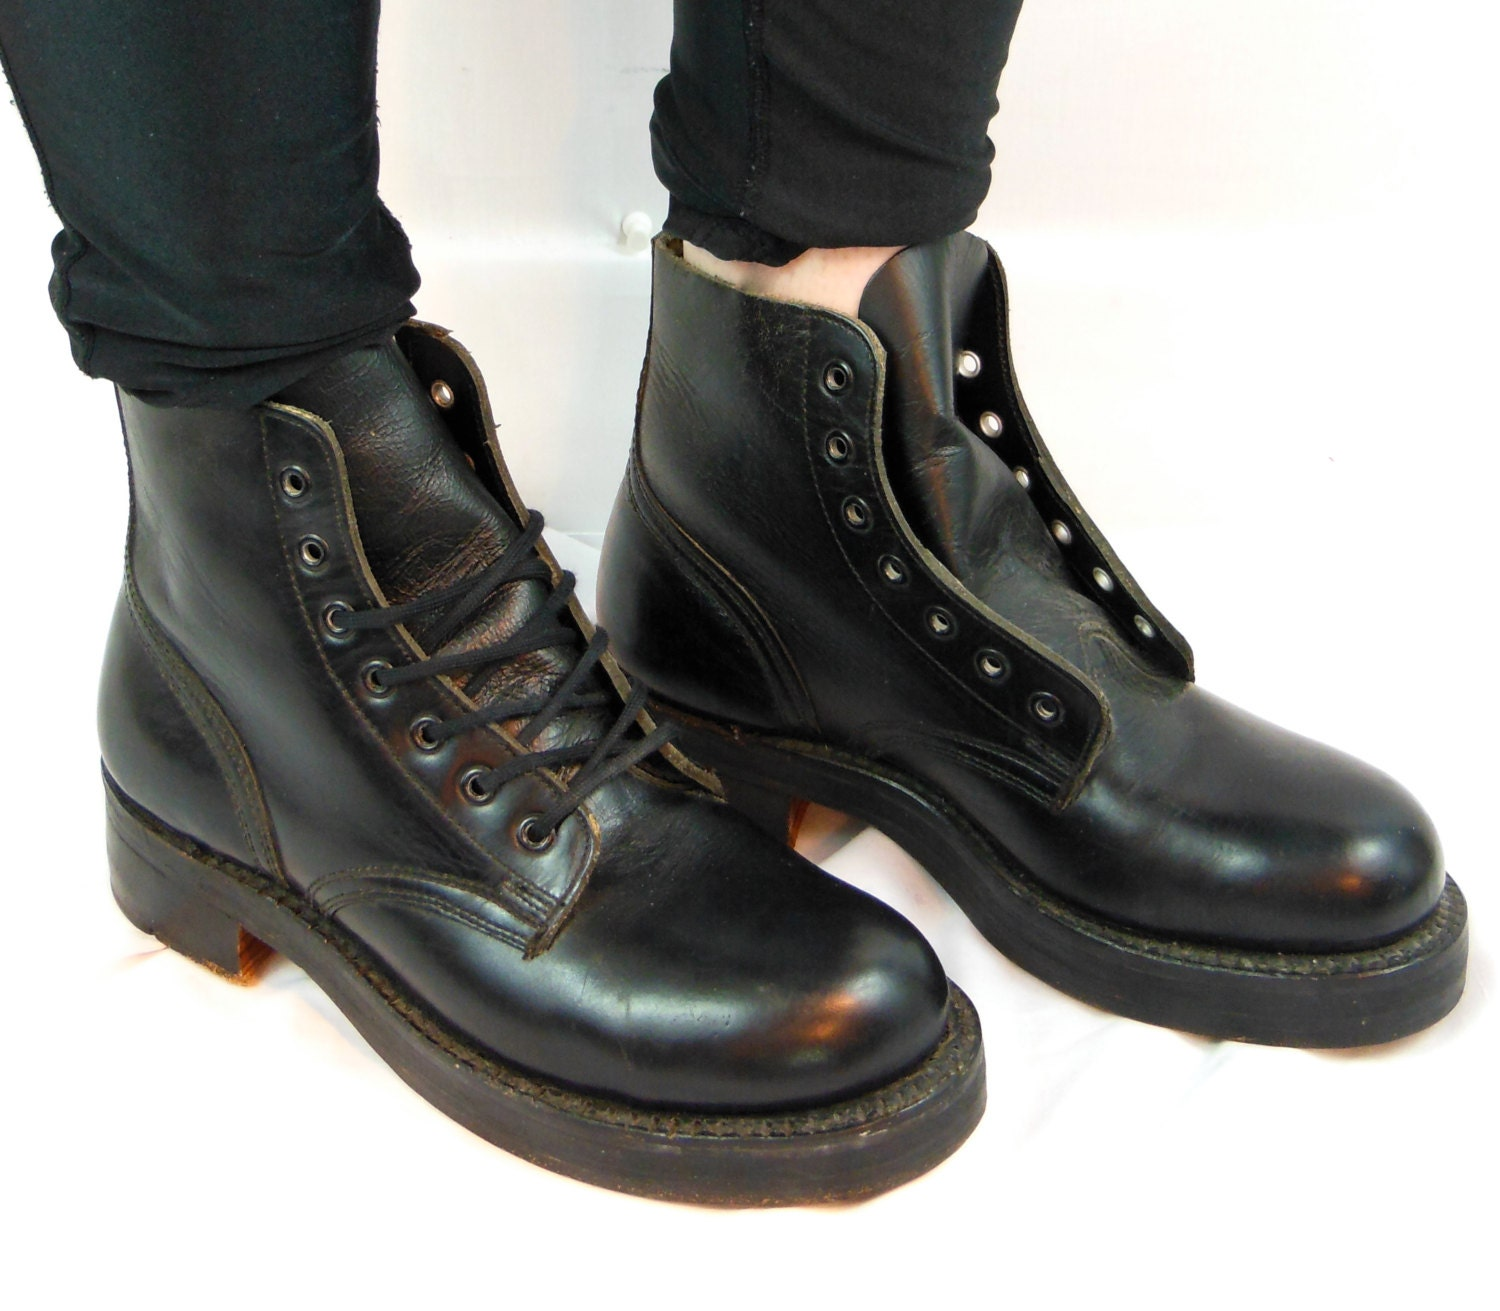 sale 1976 steel toe boots unisex black leather army boots